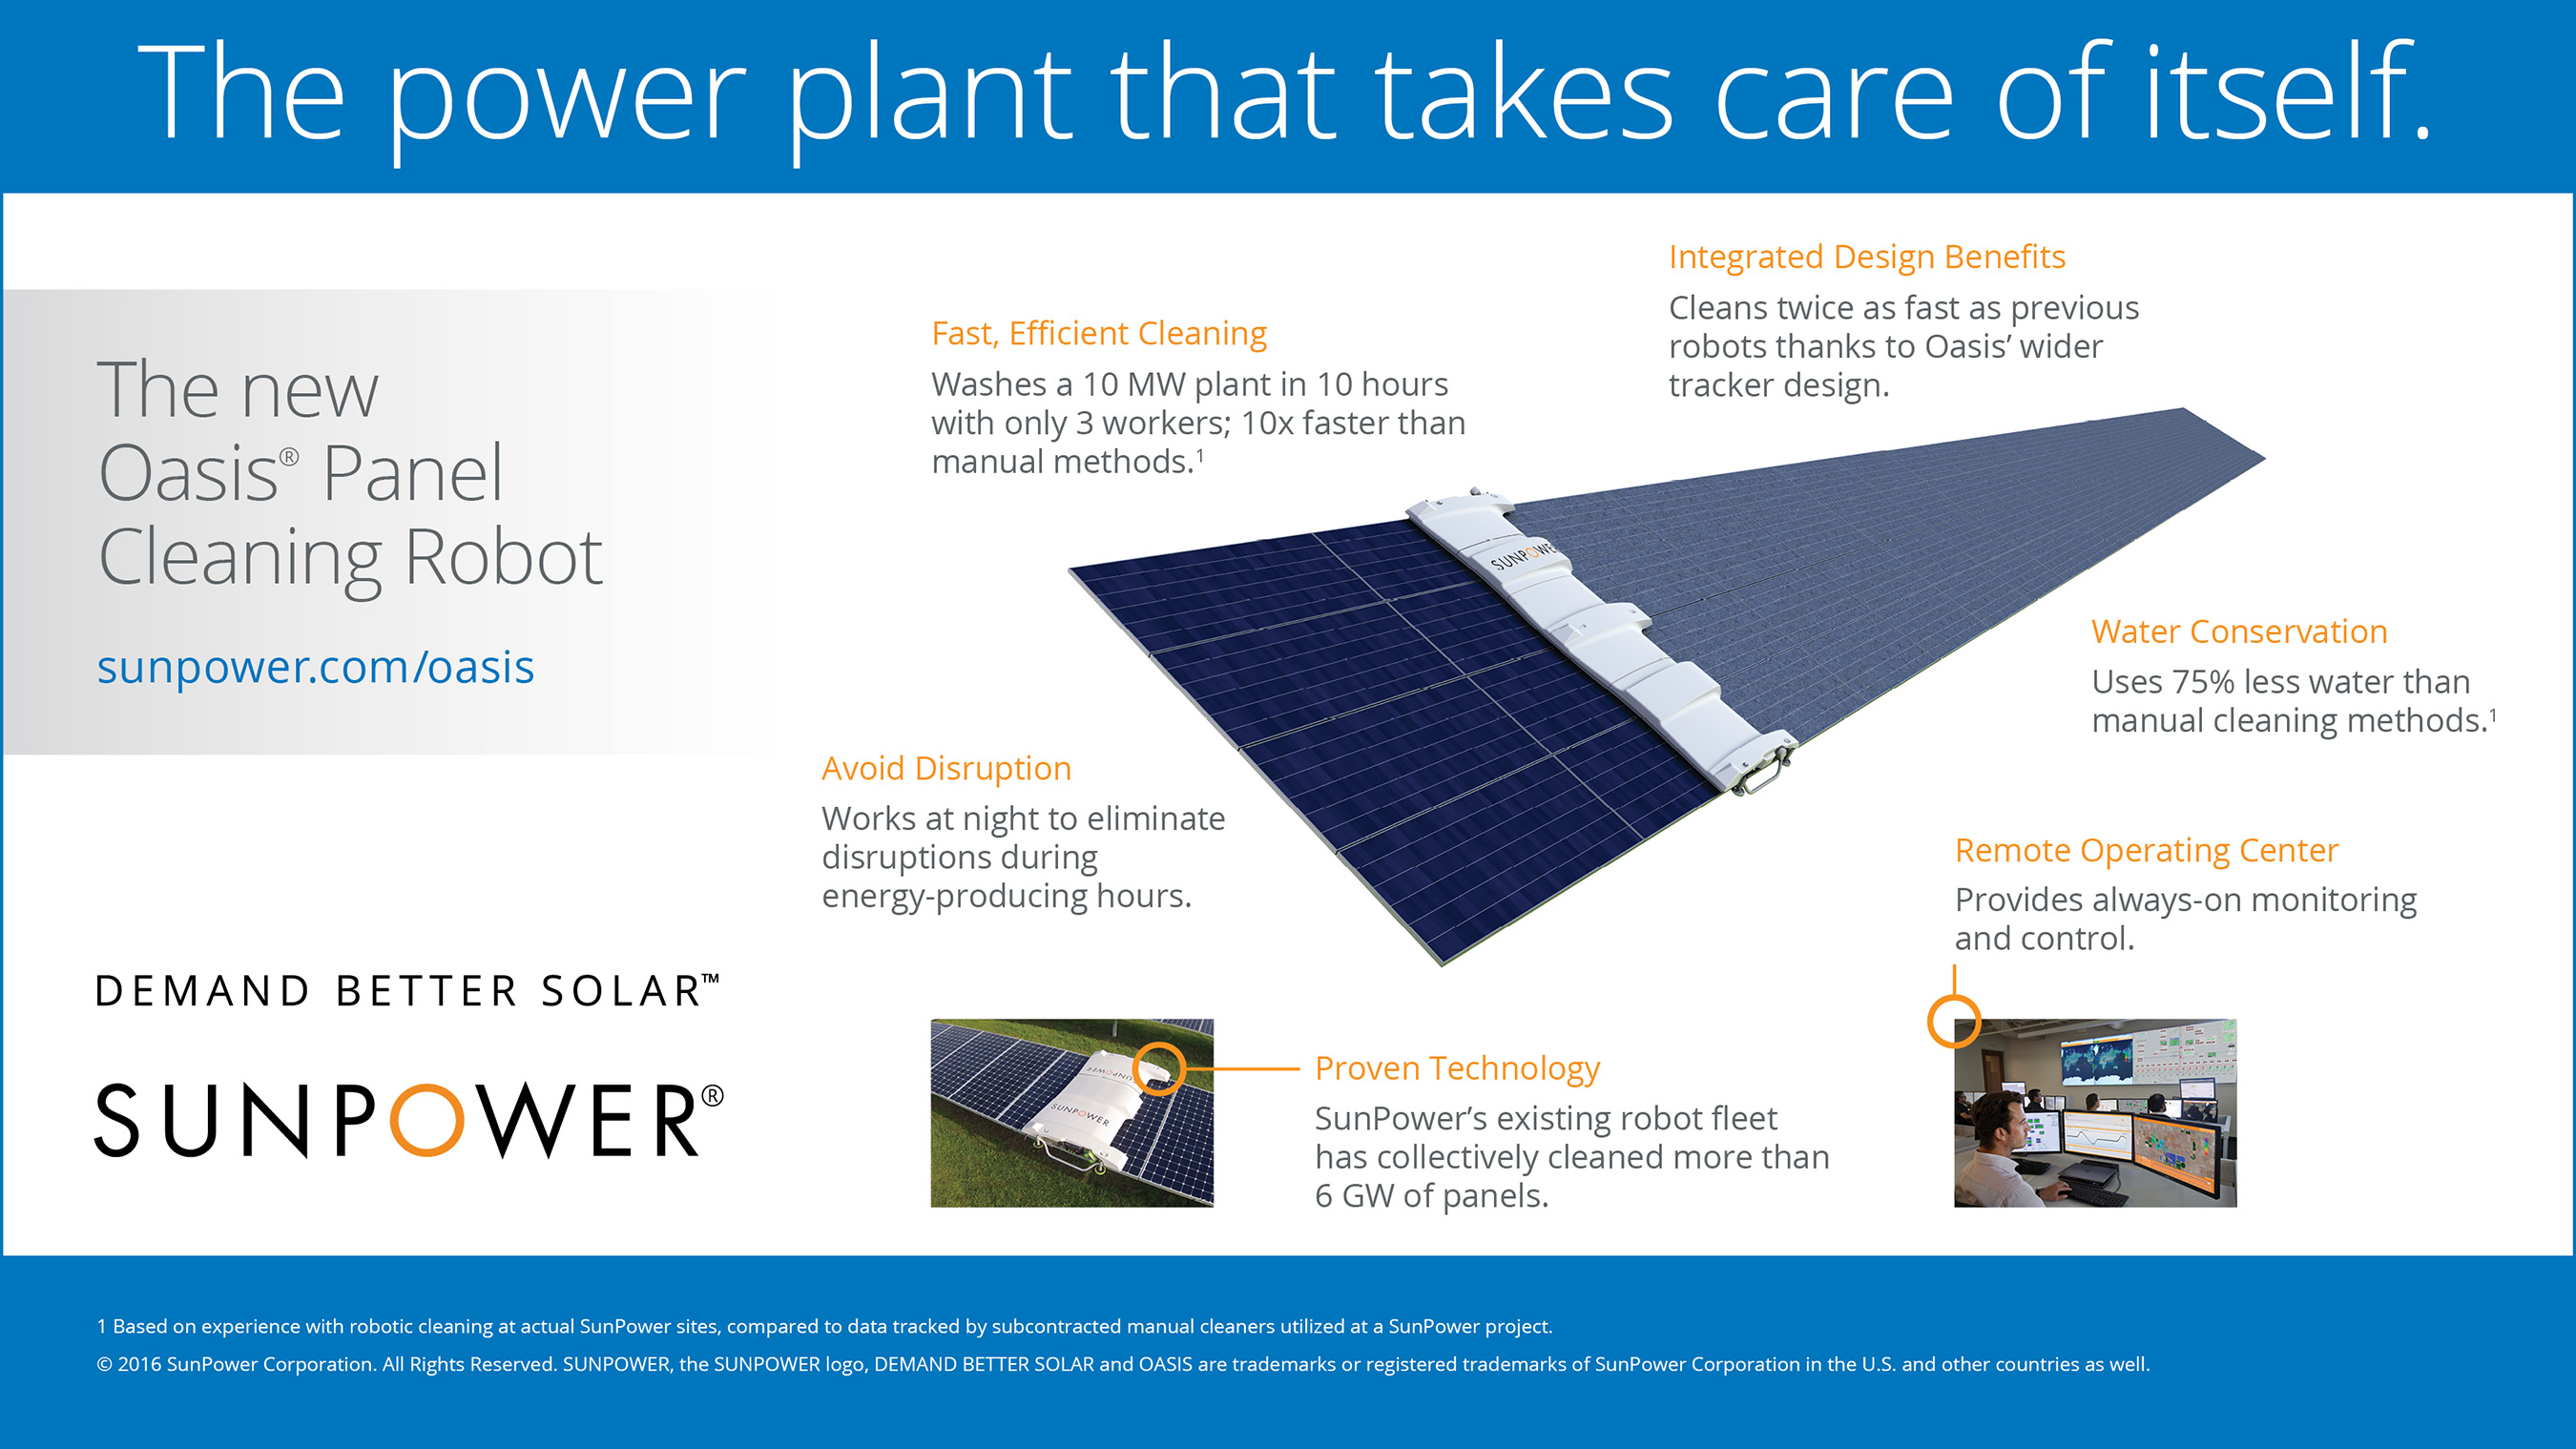 SunPower utilizes proprietary robotic panel cleaning technology at its power plants that uses 75 percent less water than manual cleaning methods and operate at night to avoid disrupting daytime energy production.